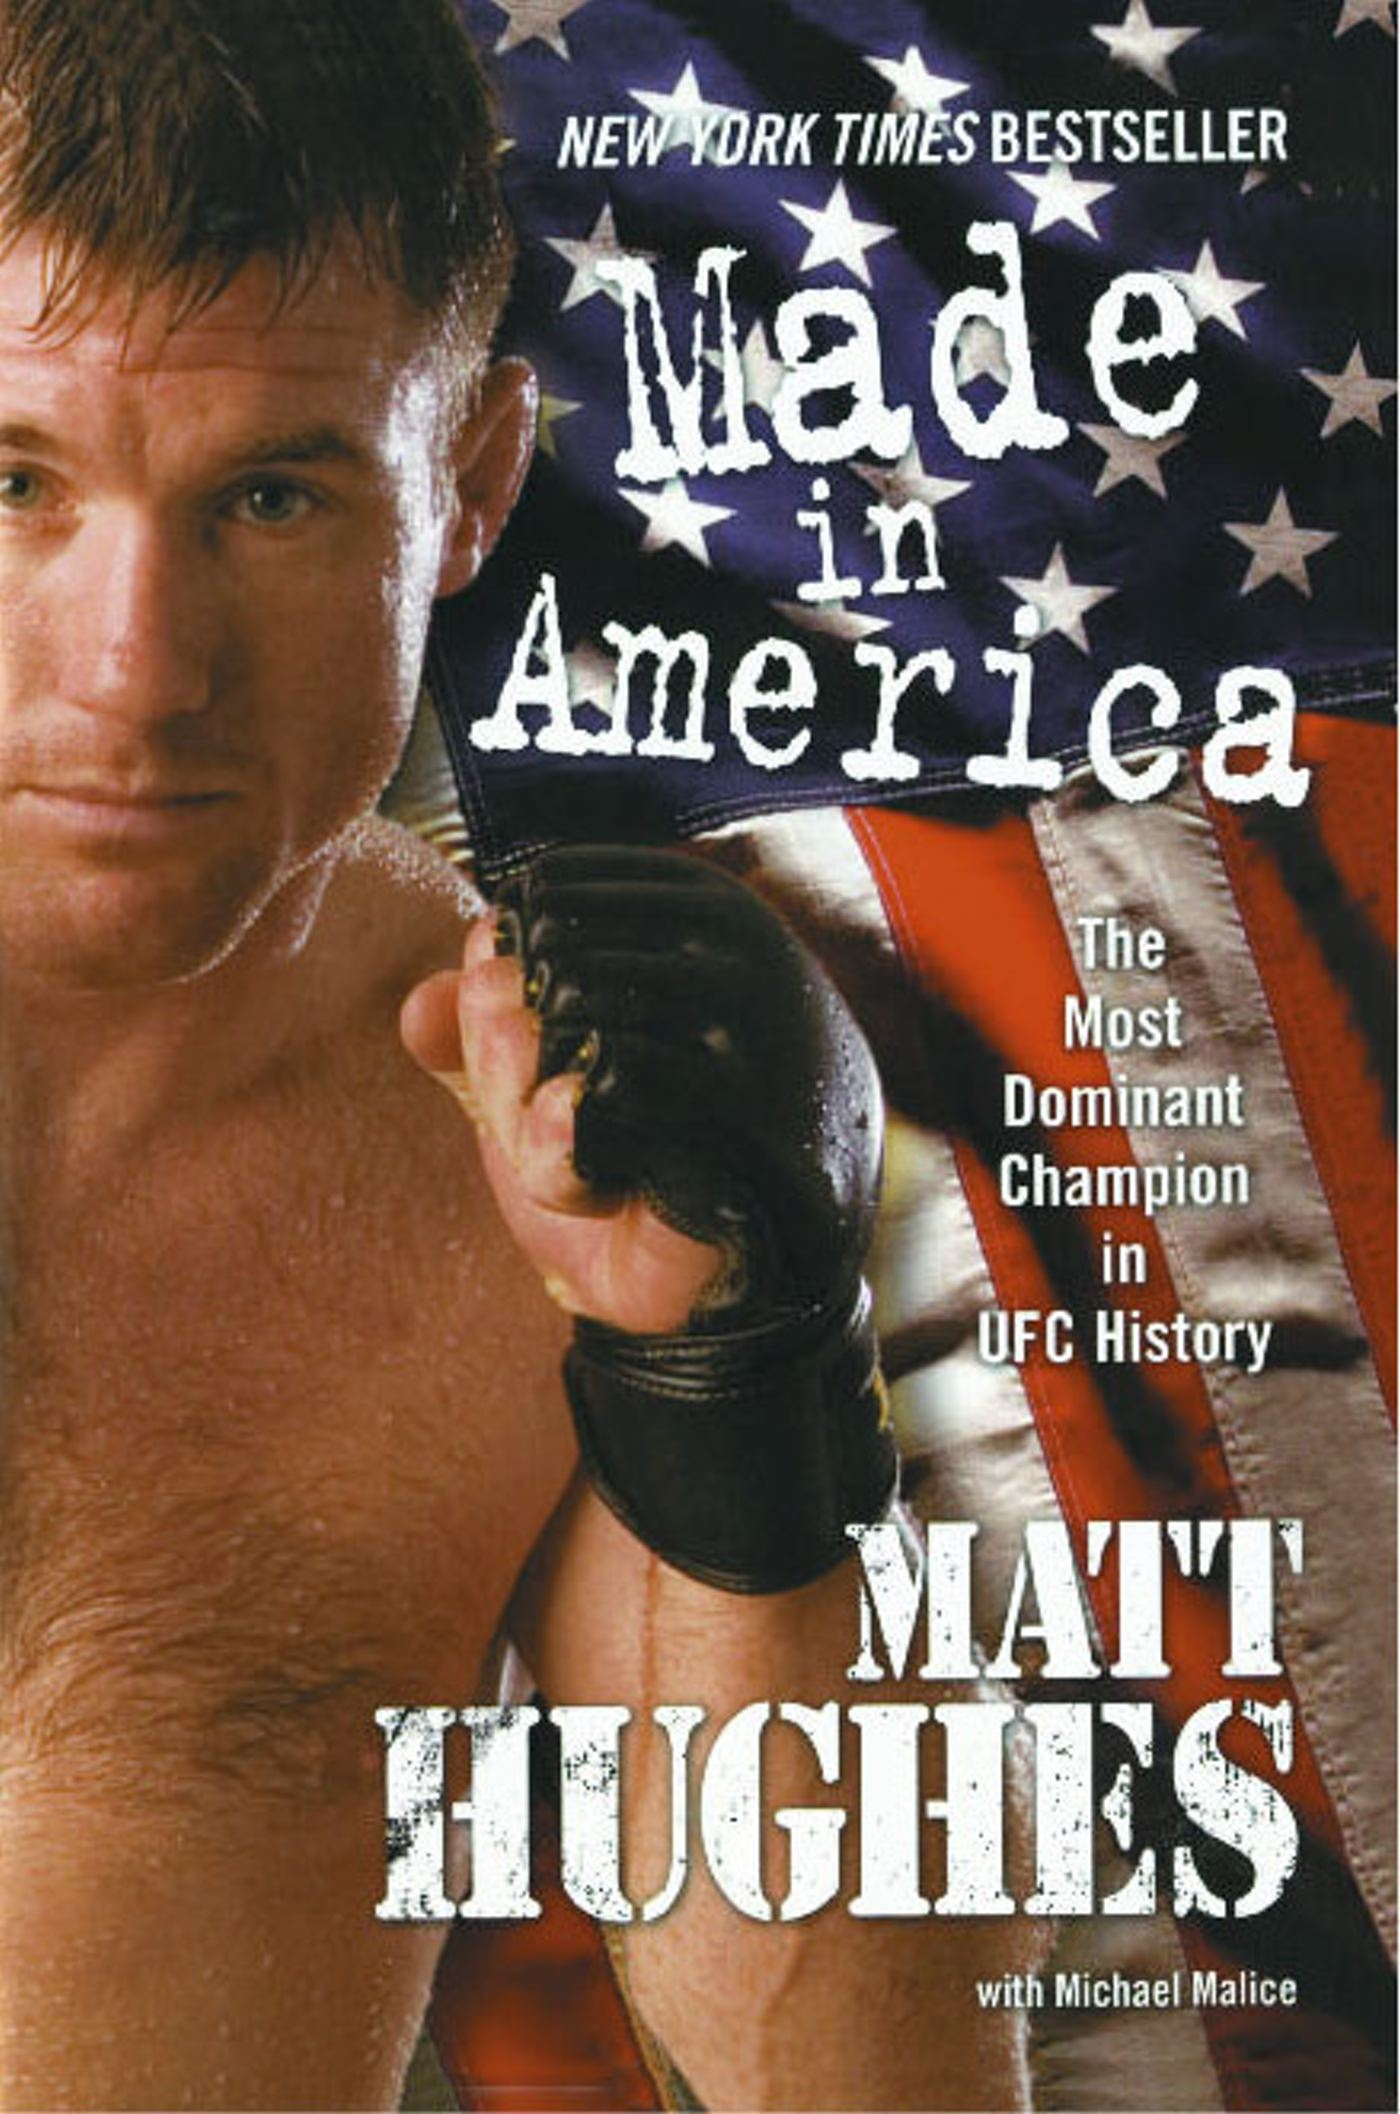 Made in America: The Most Dominant Champion in UFC History by